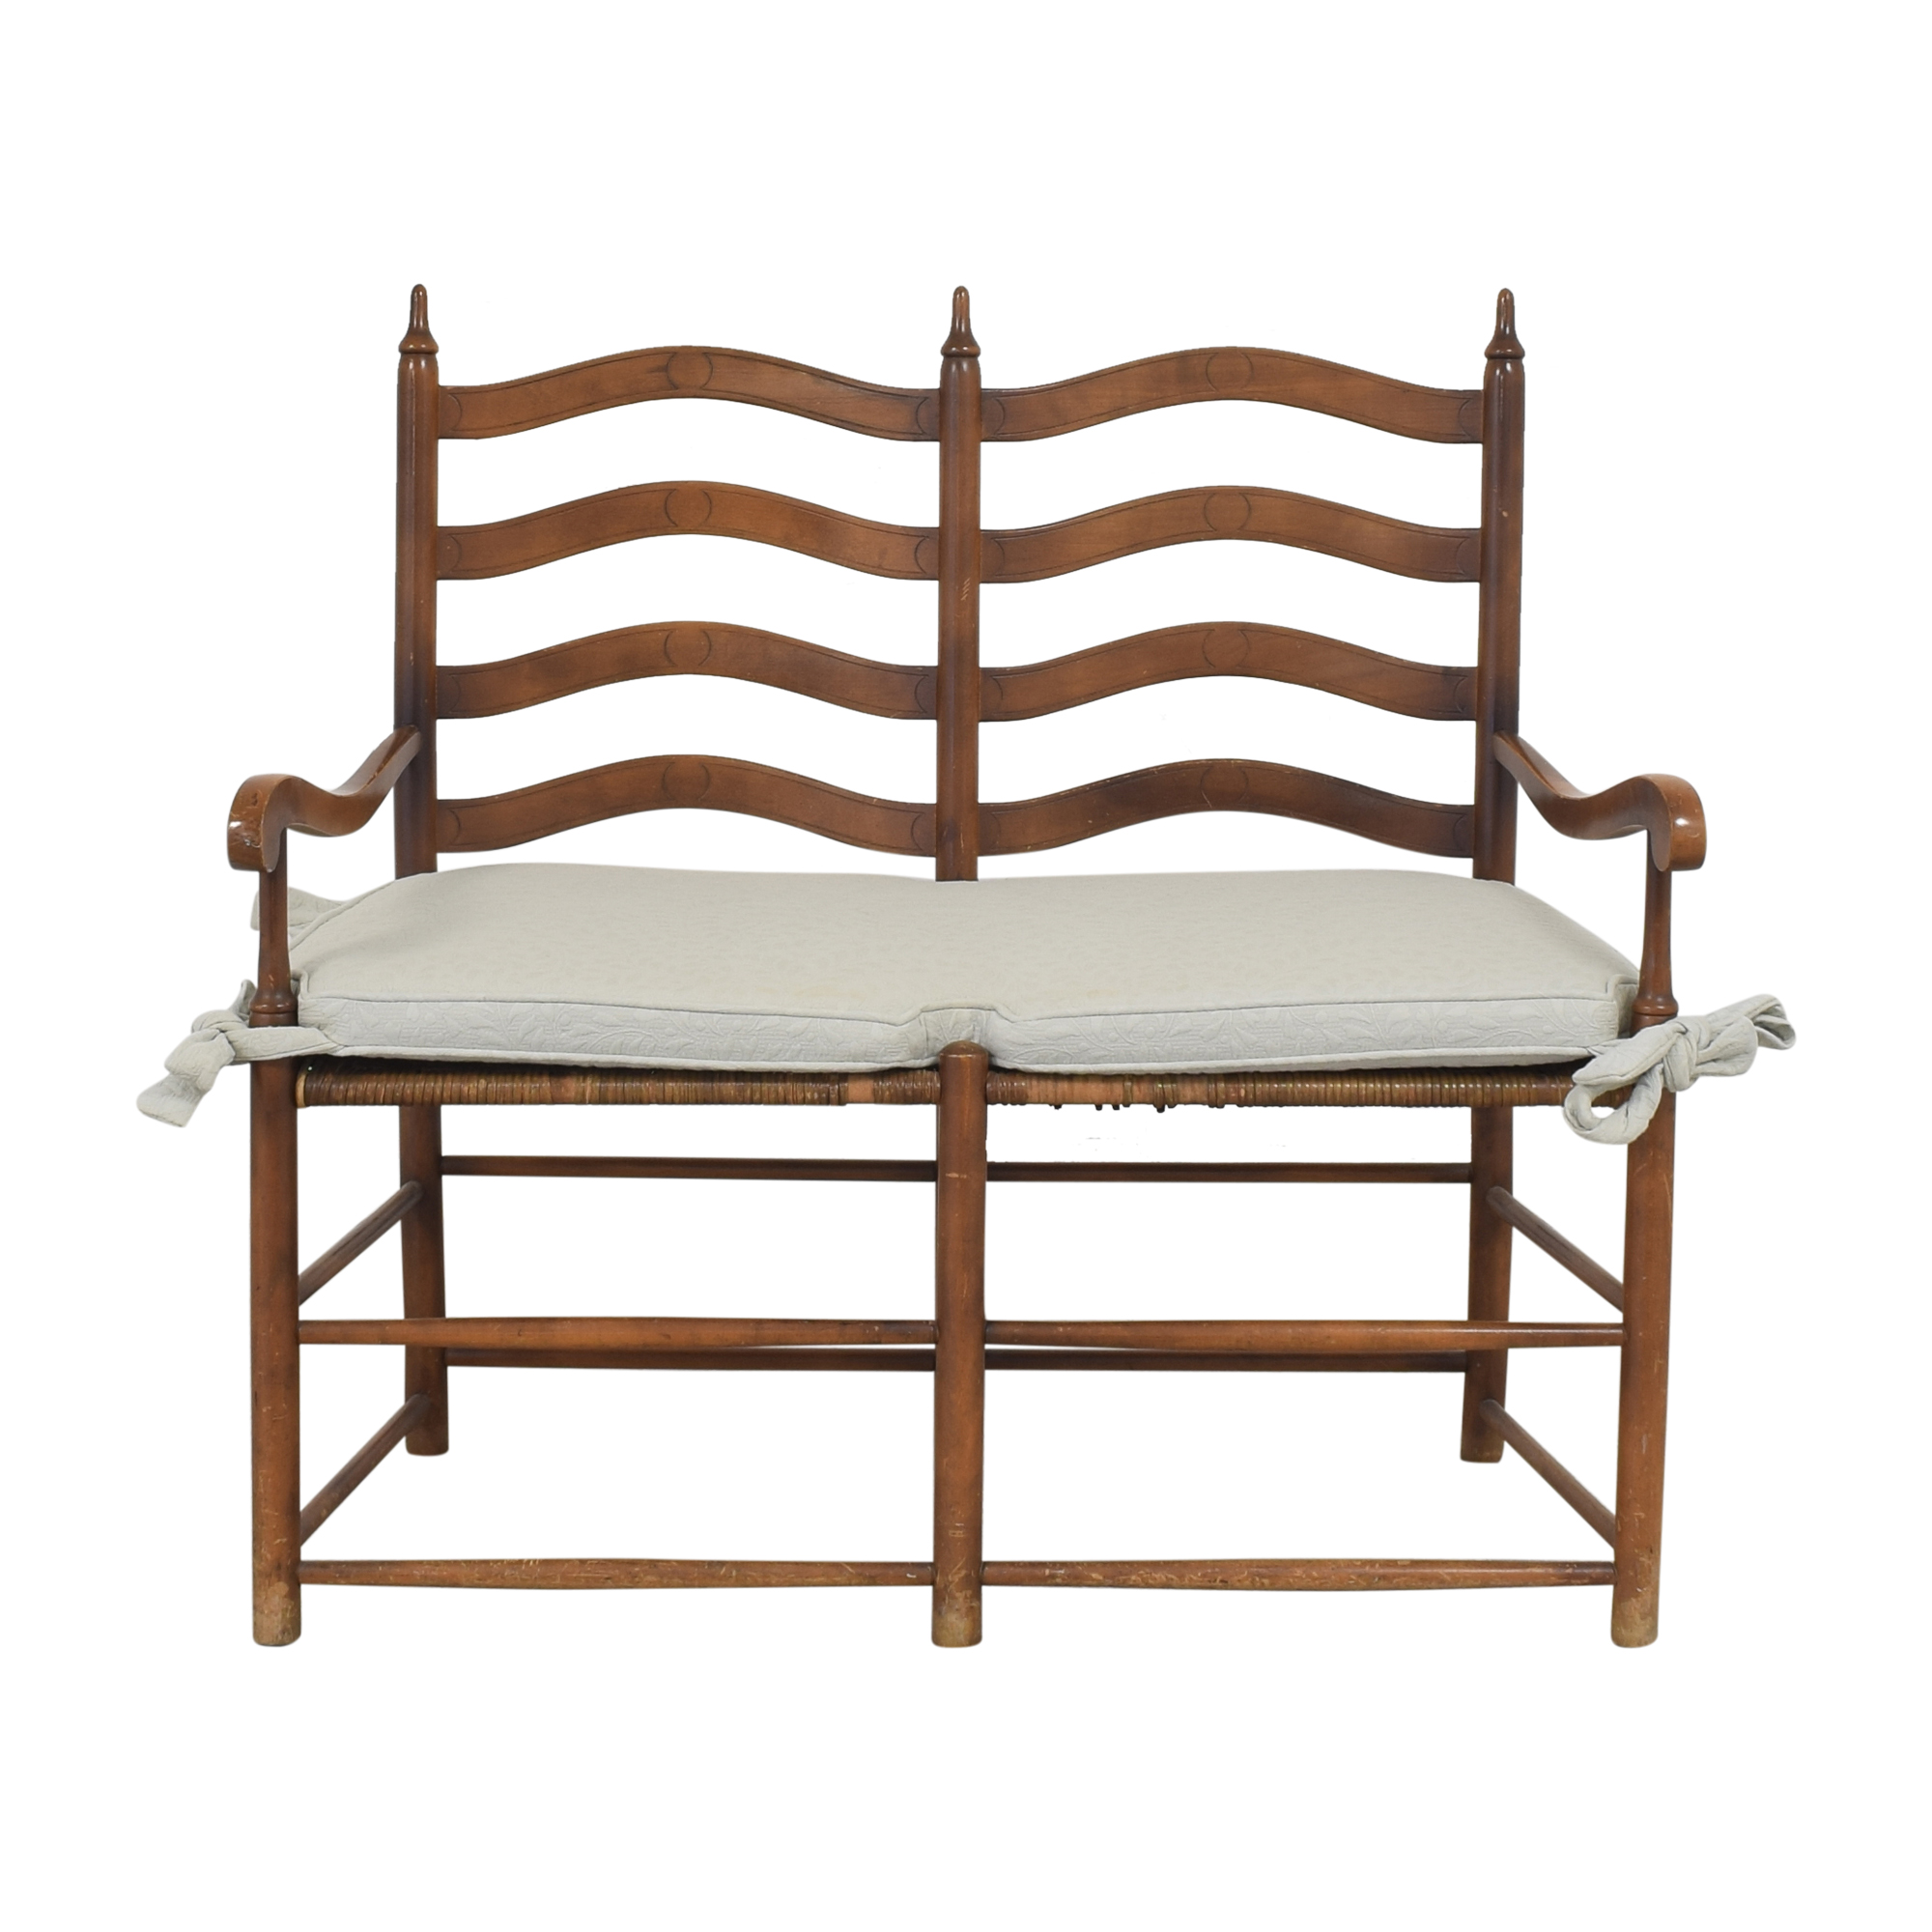 Ladderback Settee Bench with Cushion ma